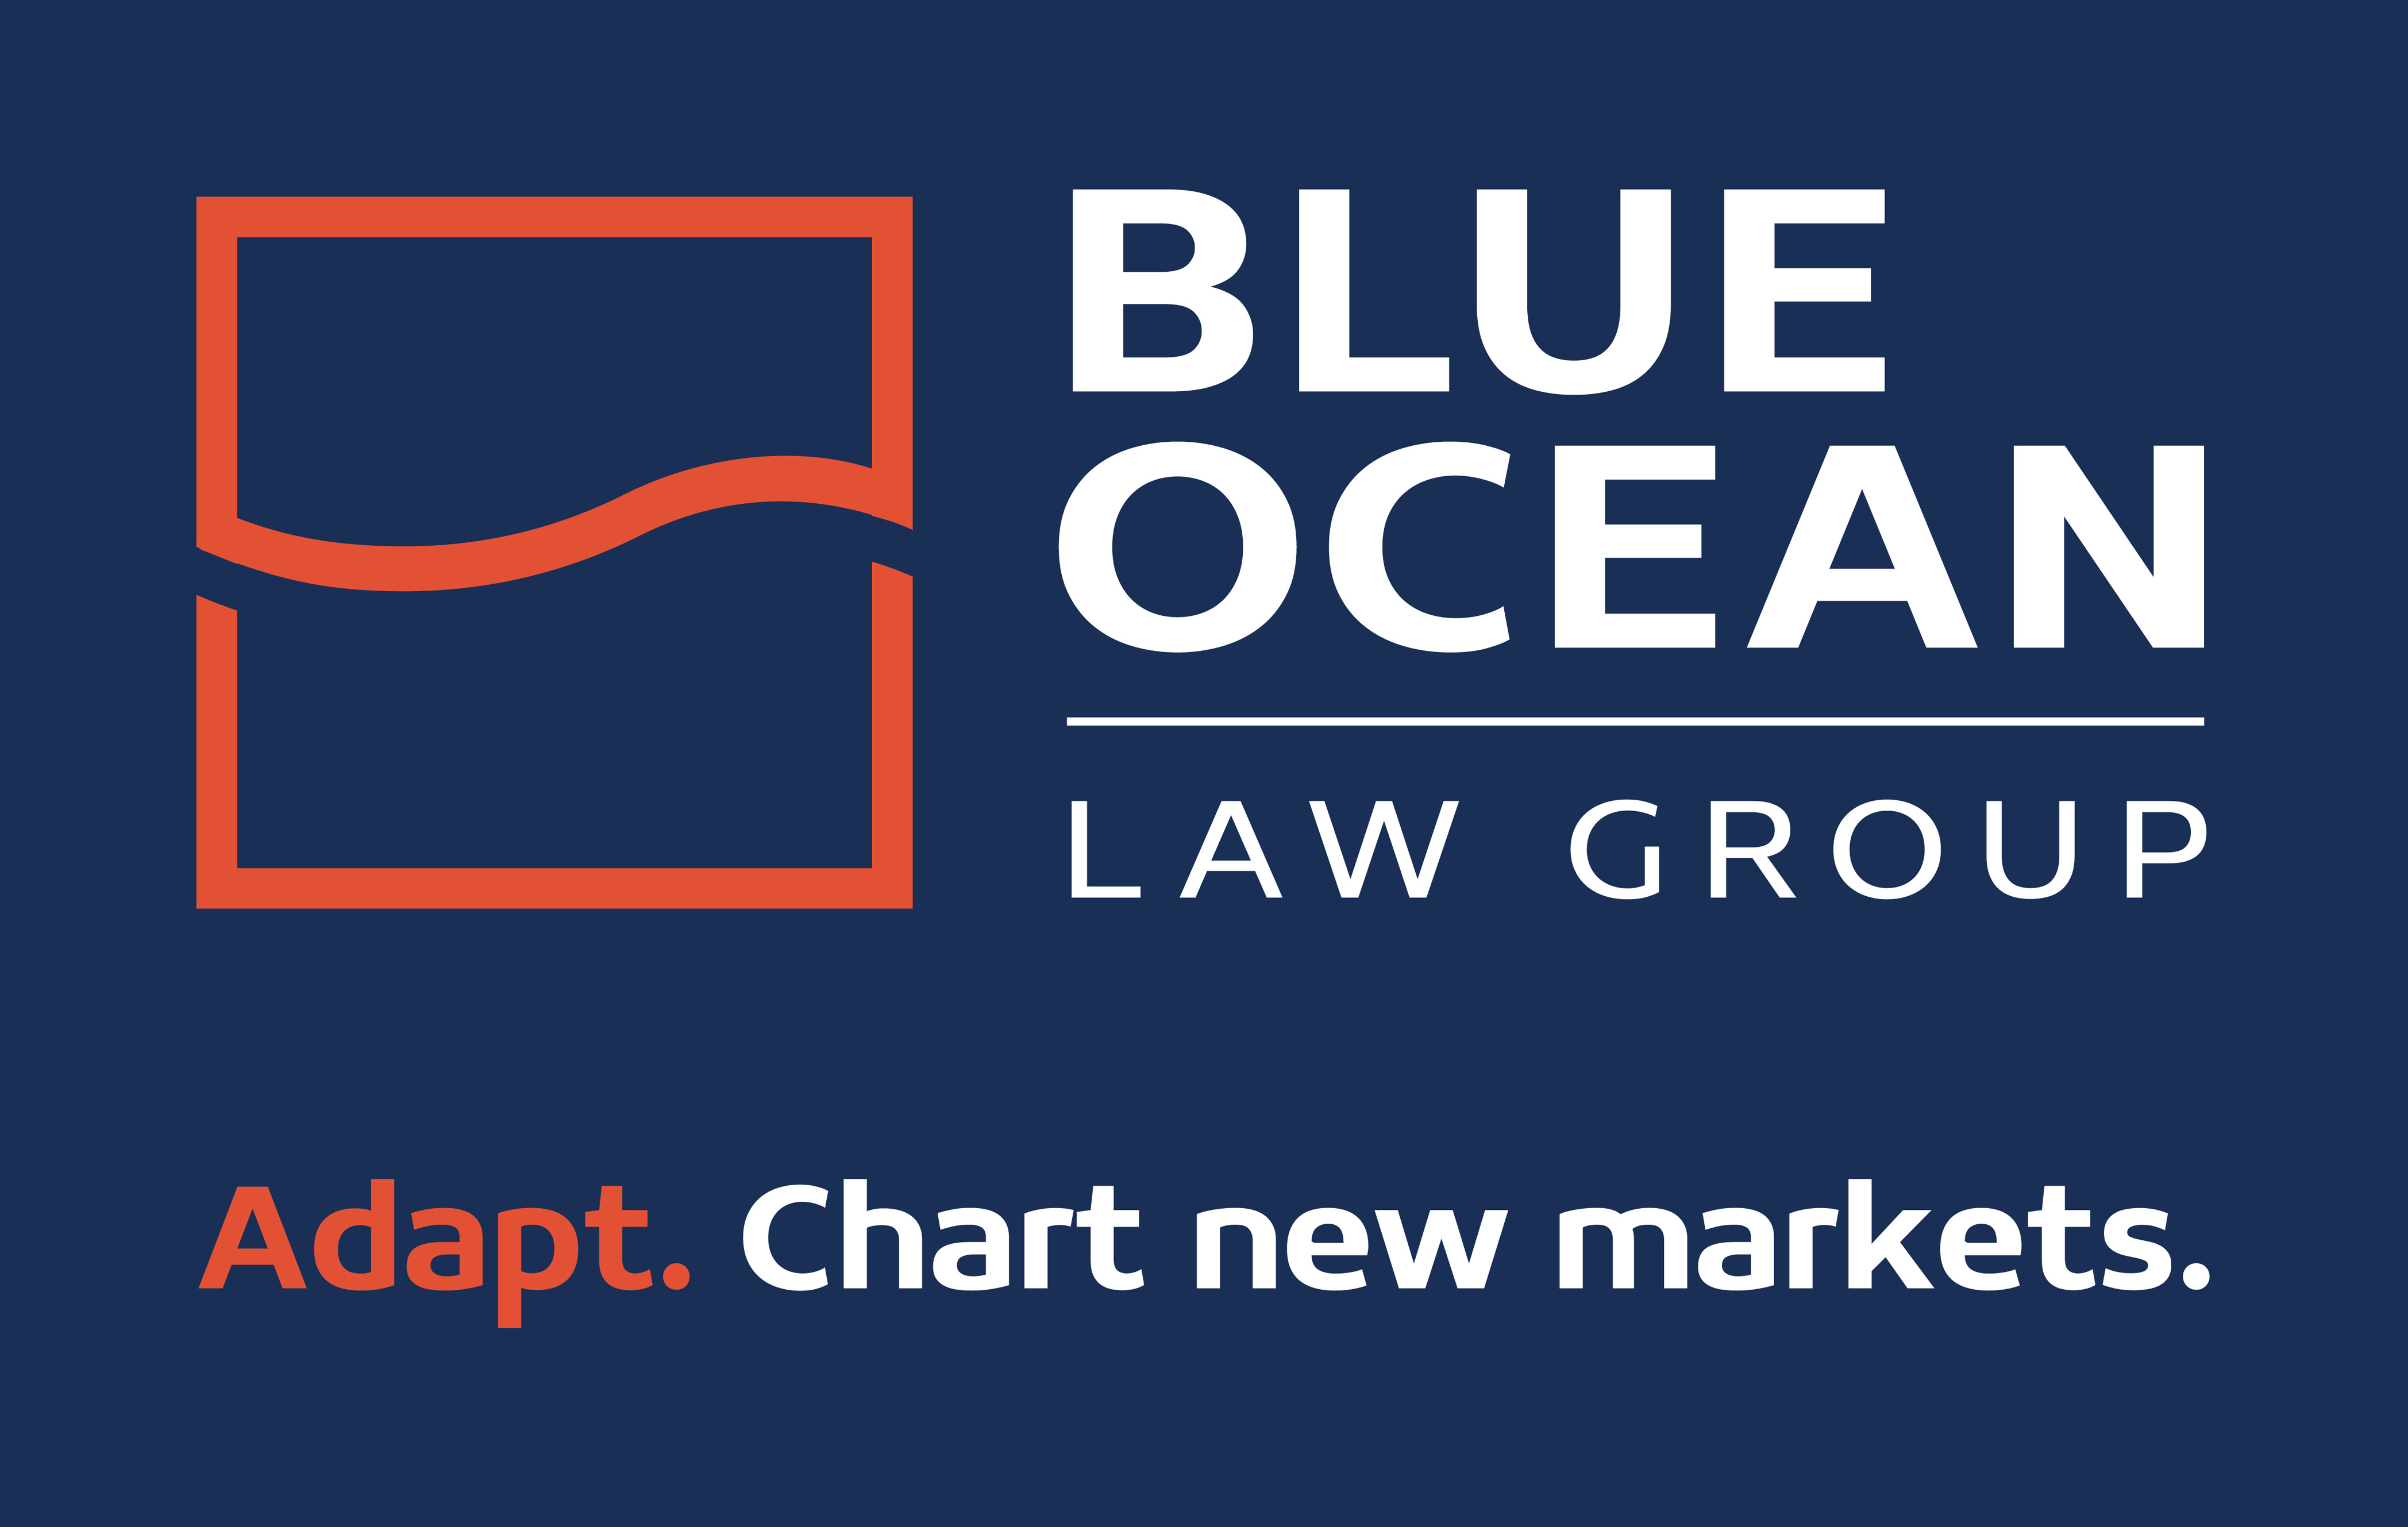 Blue Ocean Law Group